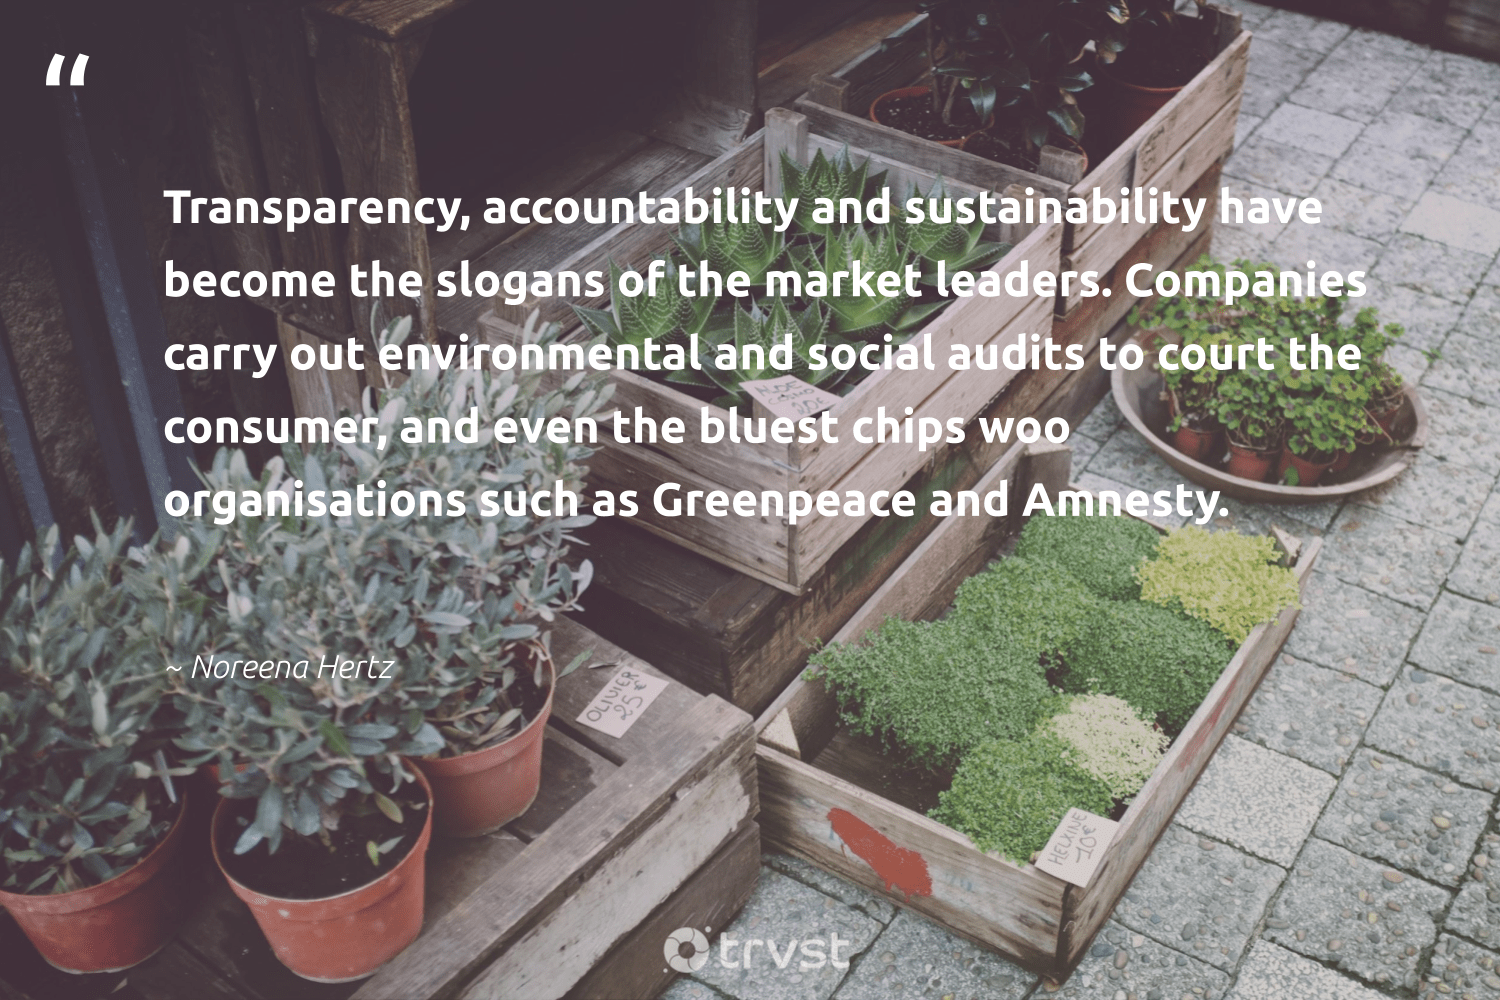 """""""Transparency, accountability and sustainability have become the slogans of the market leaders. Companies carry out environmental and social audits to court the consumer, and even the bluest chips woo organisations such as Greenpeace and Amnesty.""""  - Noreena Hertz #trvst #quotes #sustainability #environmental #sustainableliving #ethicalbusiness #bethechange #dosomething #ecofriendly #giveback #green #thinkgreen"""